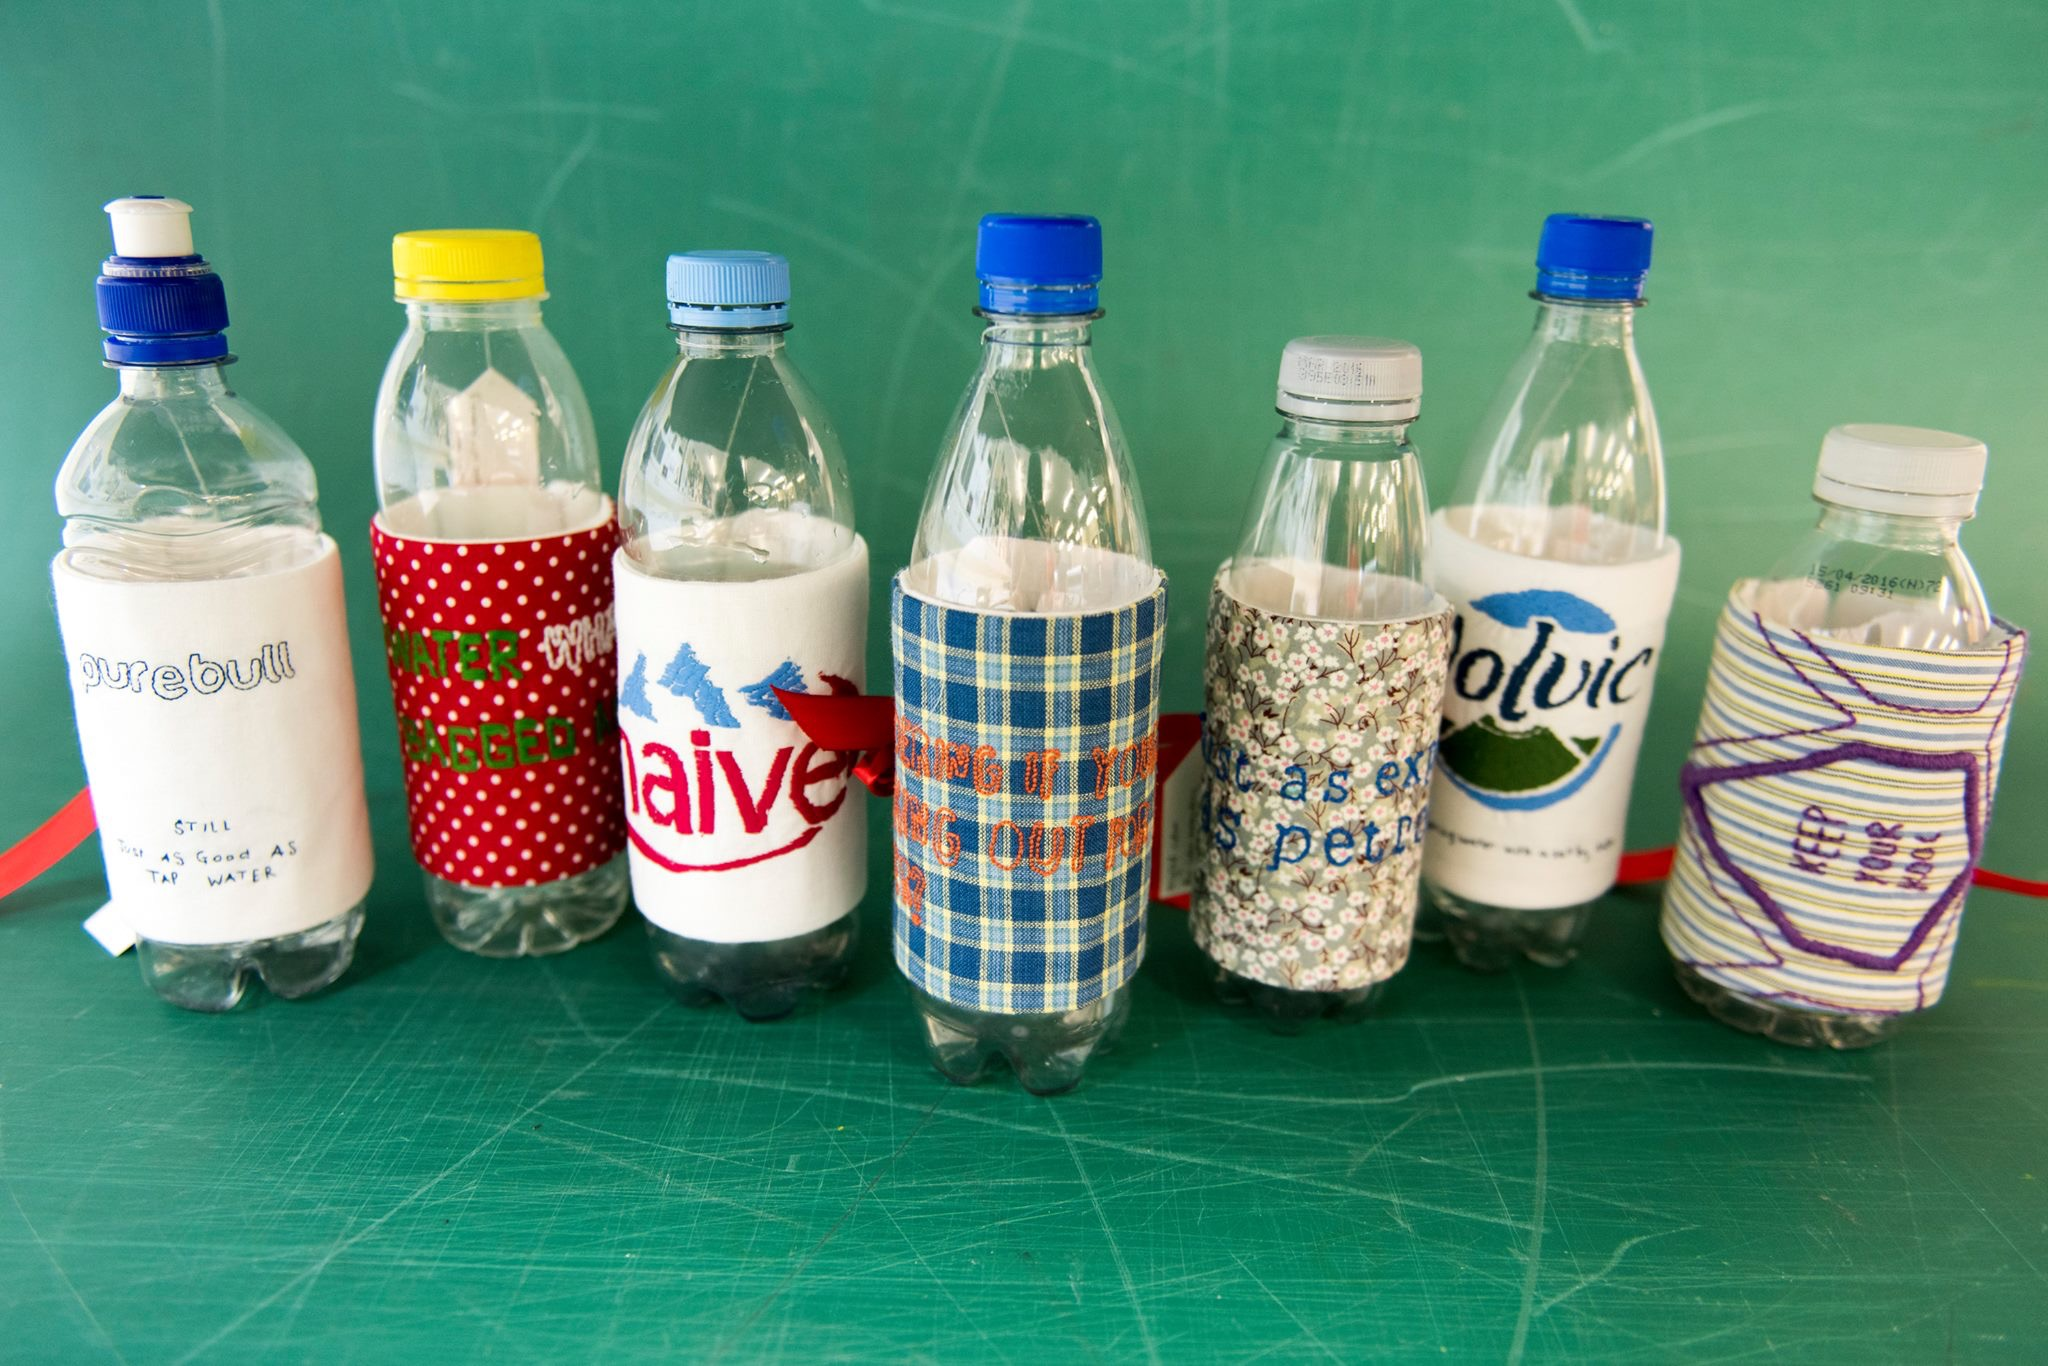 Bottle Cozy Collection: Photographed by George Bud